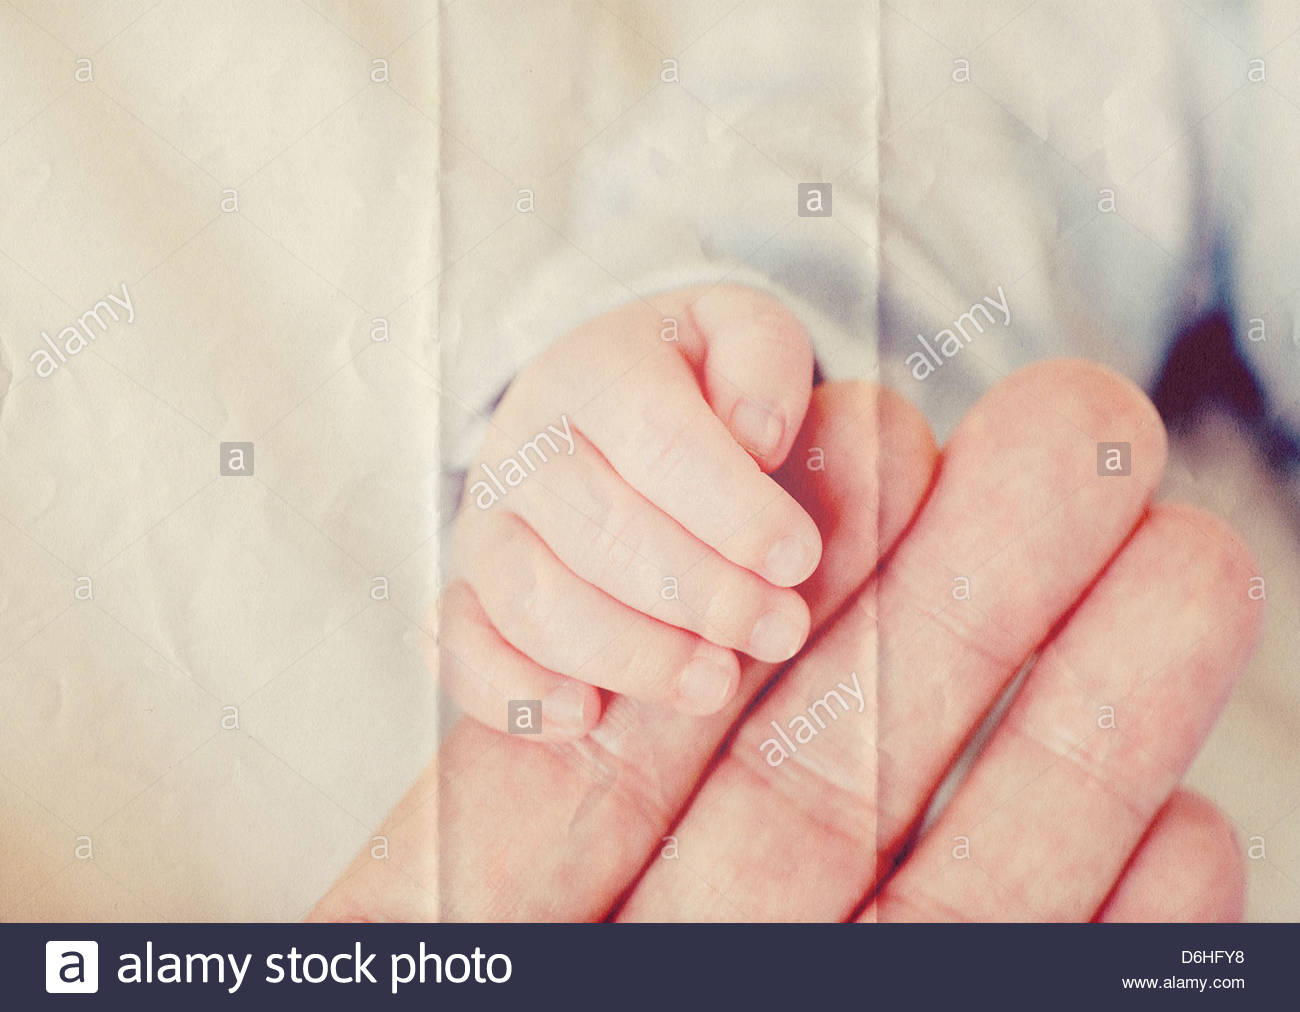 baby hand paper texture - Stock Image